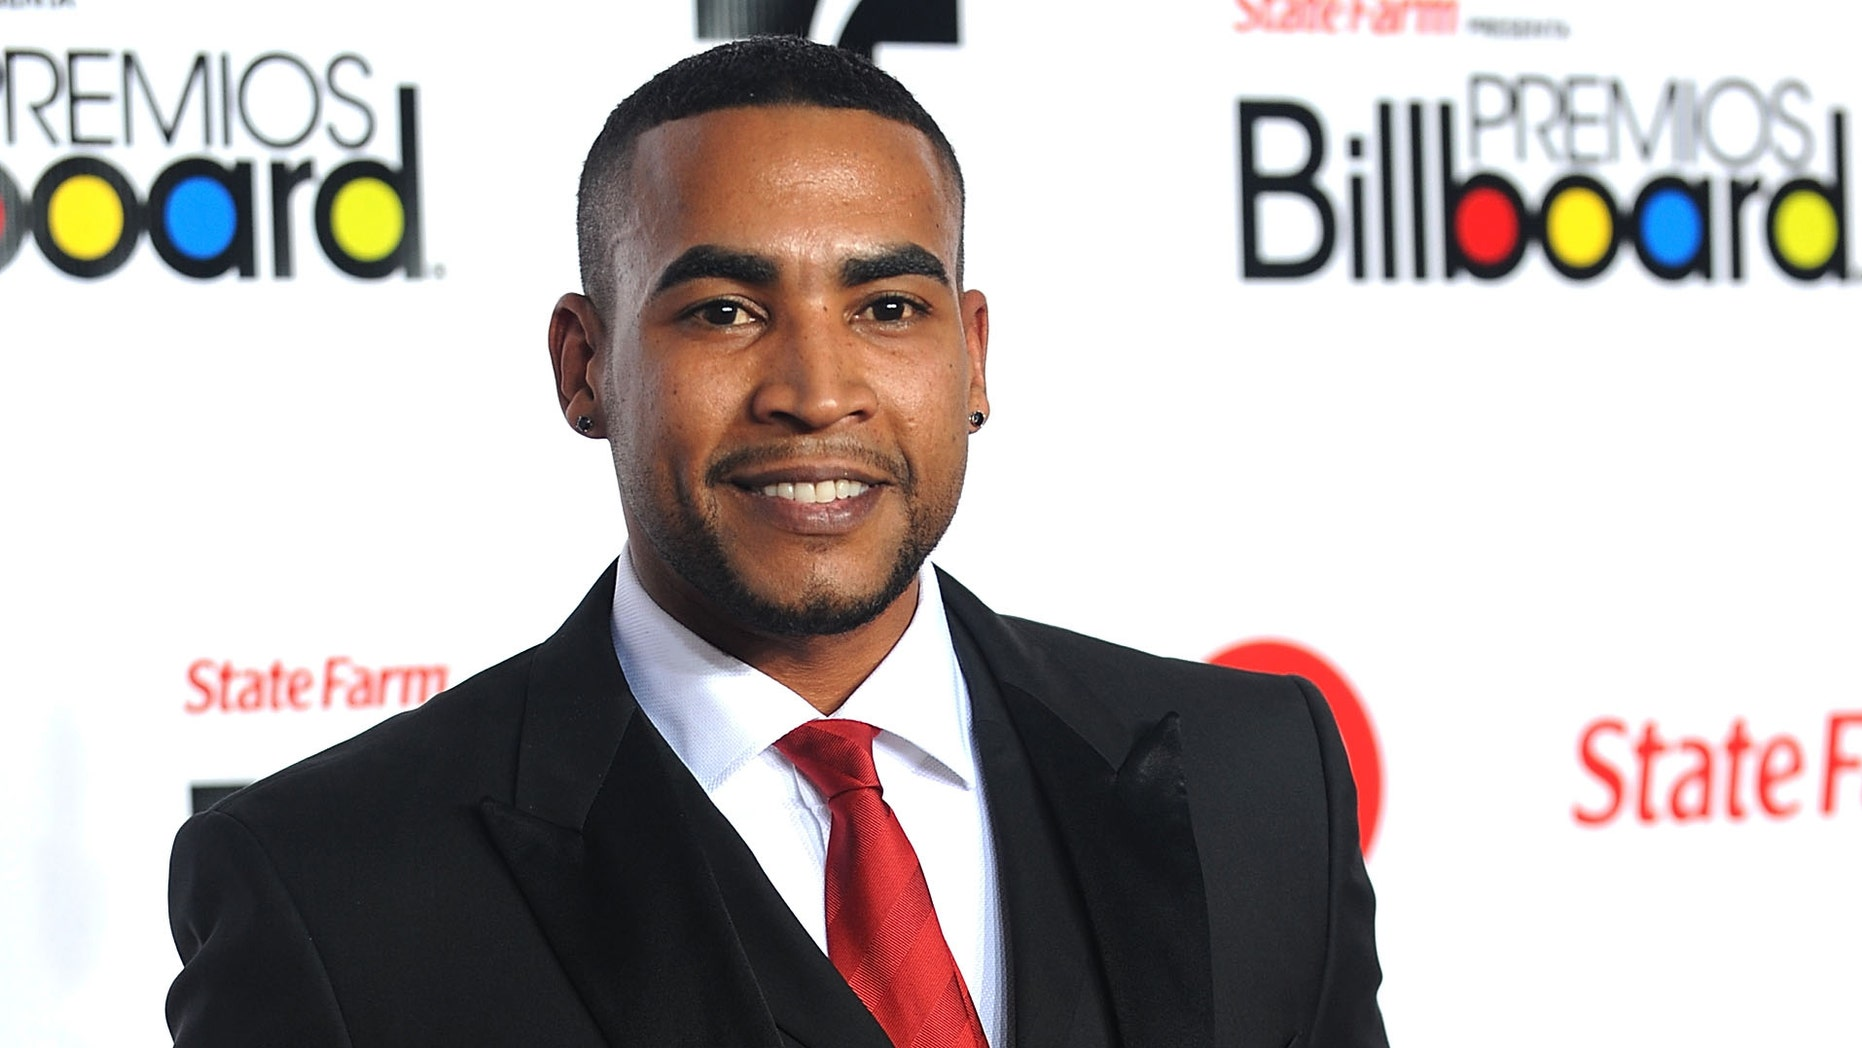 Don Omar arrives at the Billboard Latin Music Awards on April 28, 2011 in Miami, Florida.